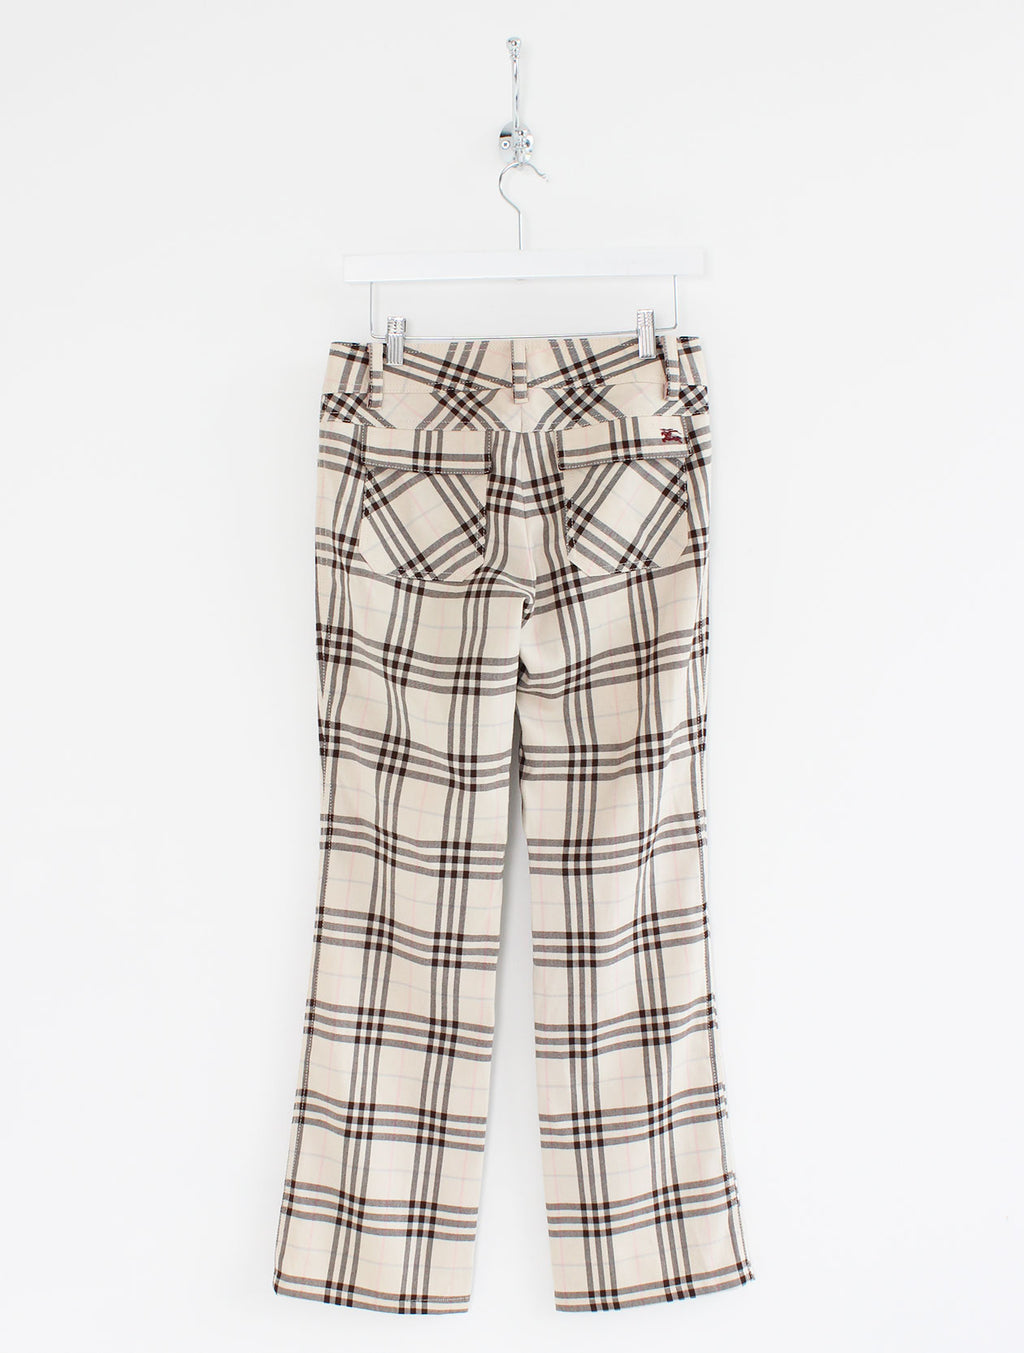 Women's Burberry Trousers (M)